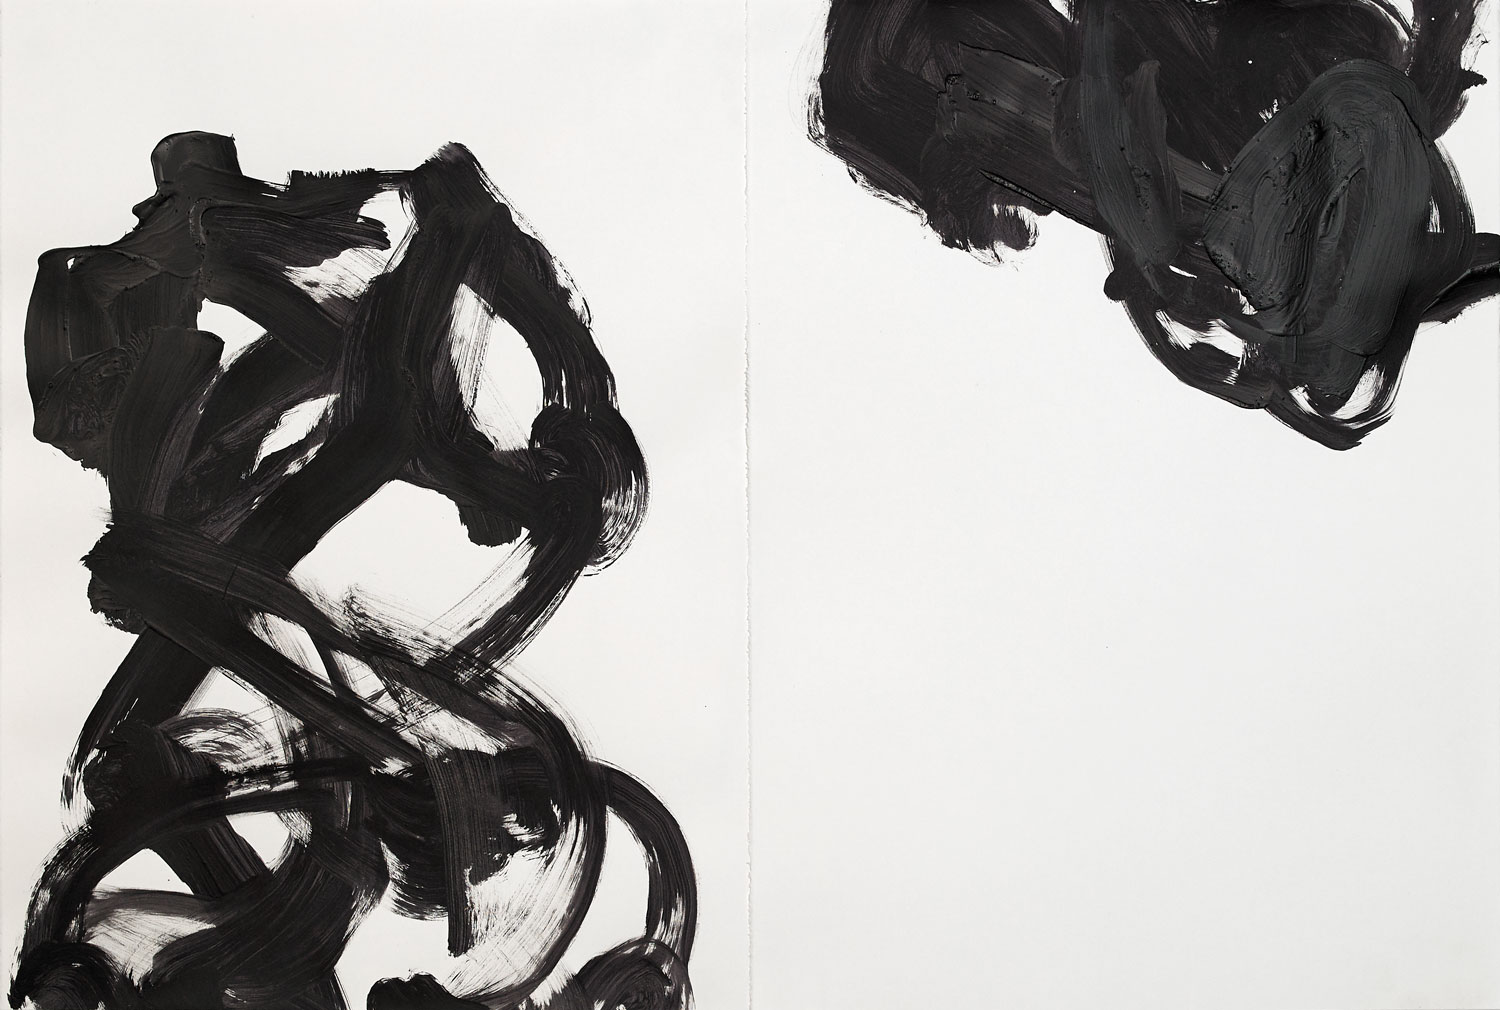 """STANDPOINT  acrylic on paper, diptych 30"""" x 44.75"""" 2016 SOLD"""